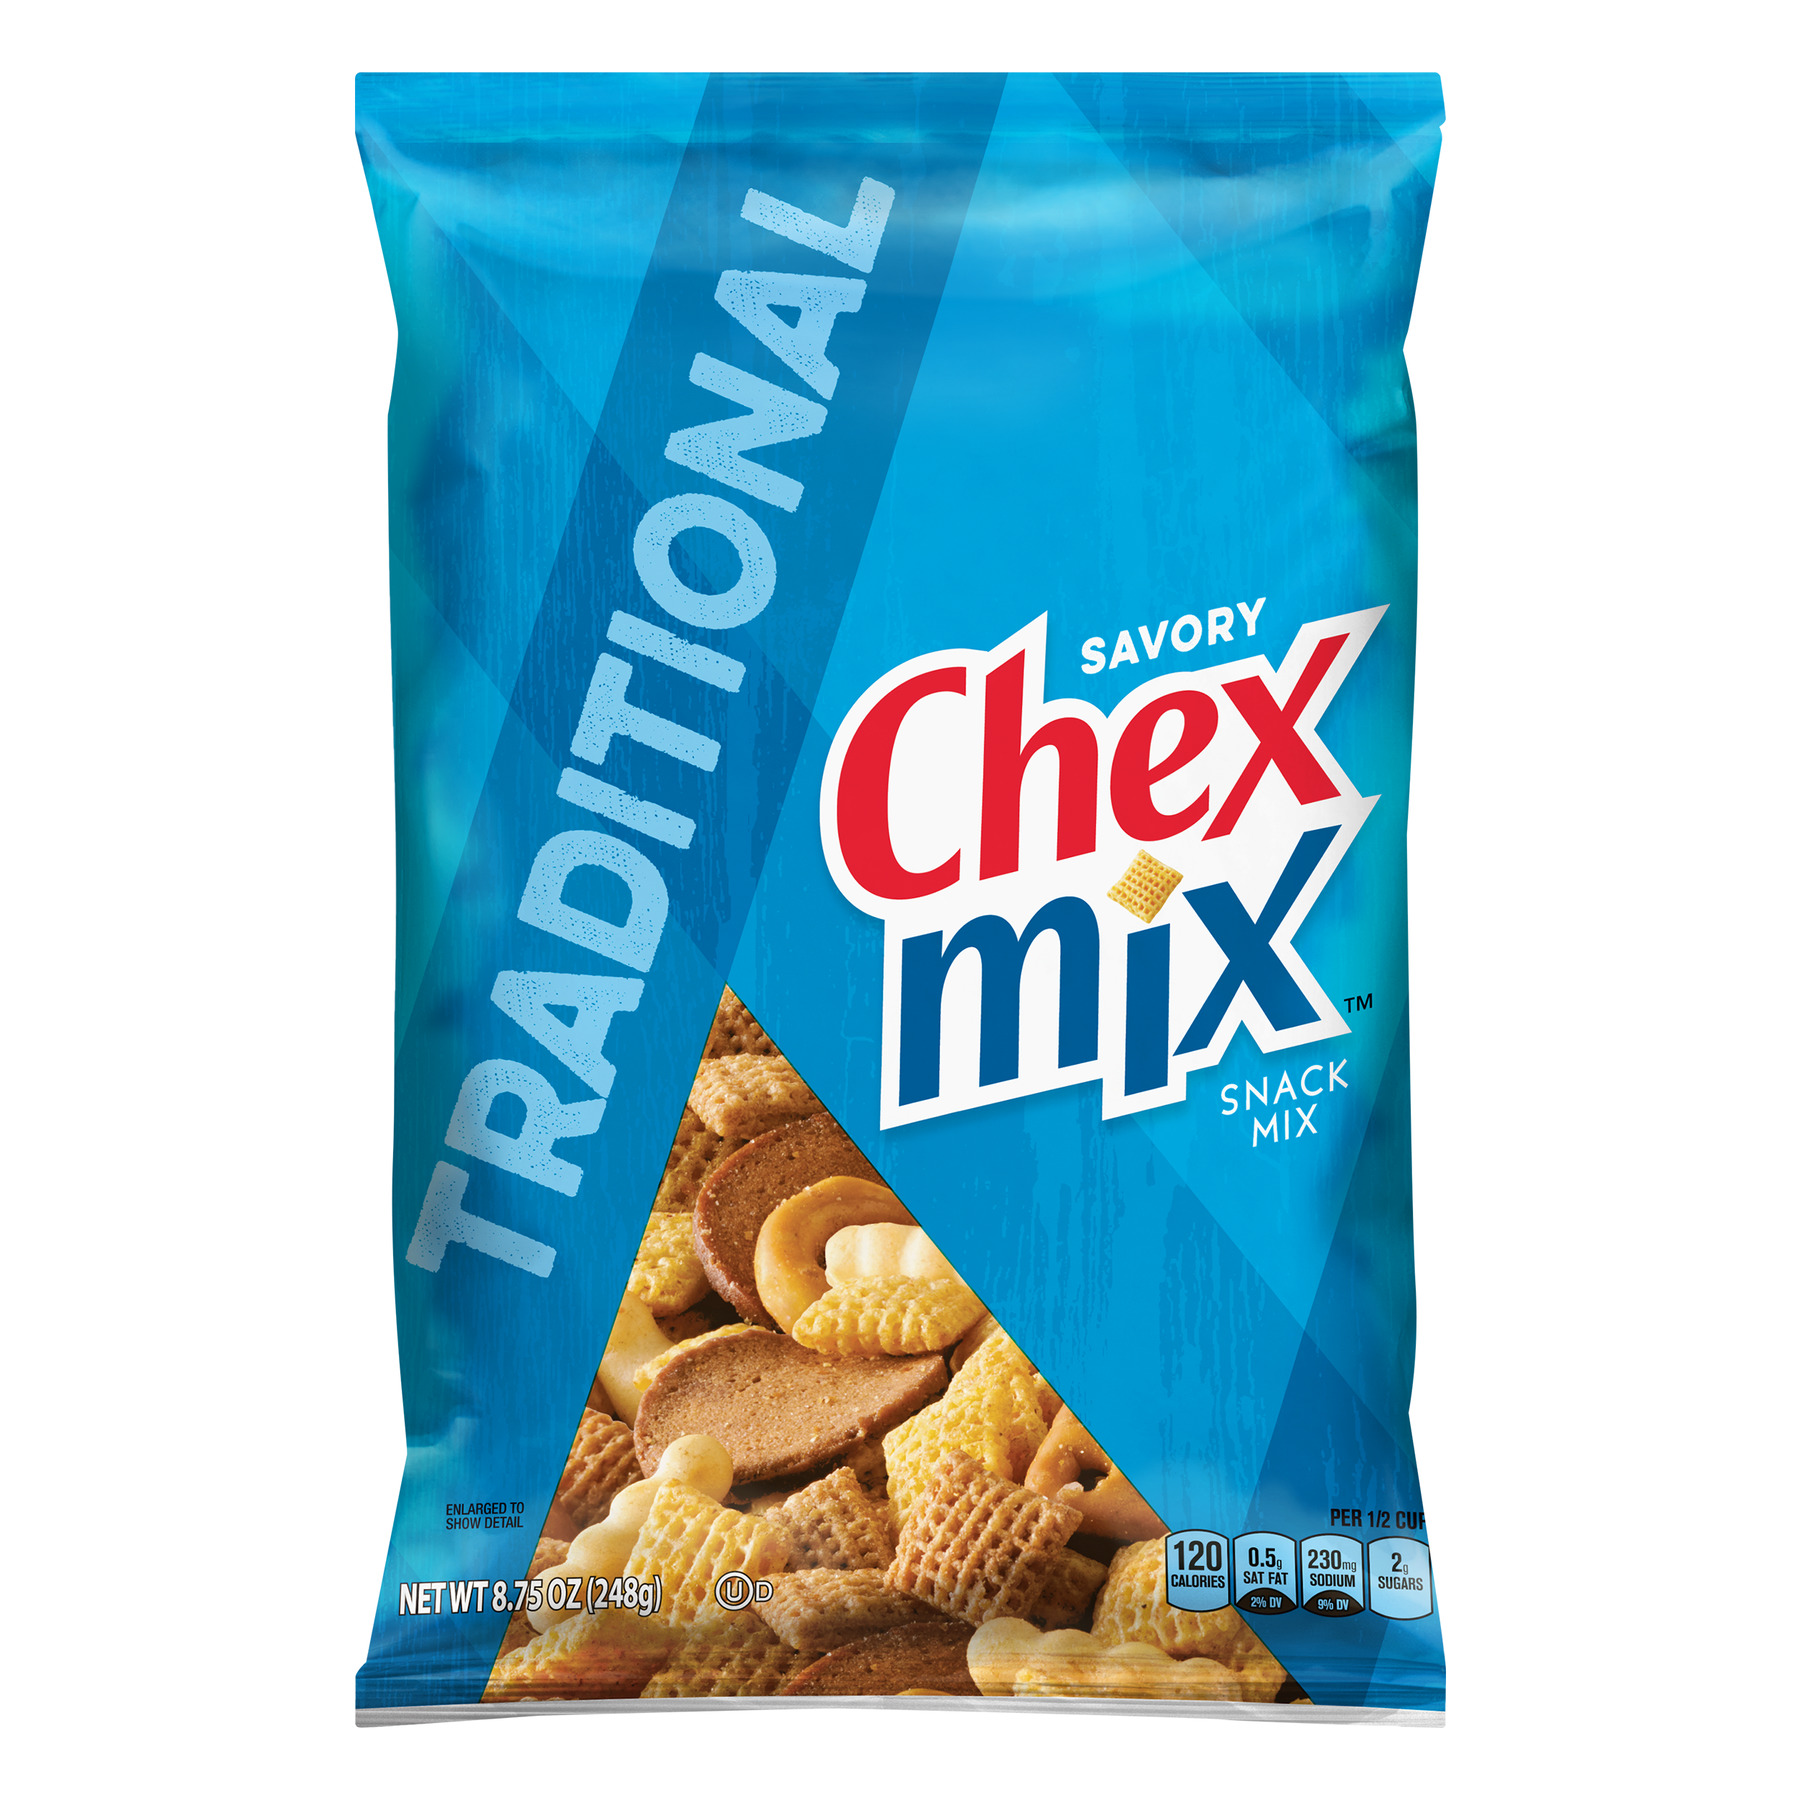 Chex Mix Traditional Savory Snack Mix, 8.75 oz Bag